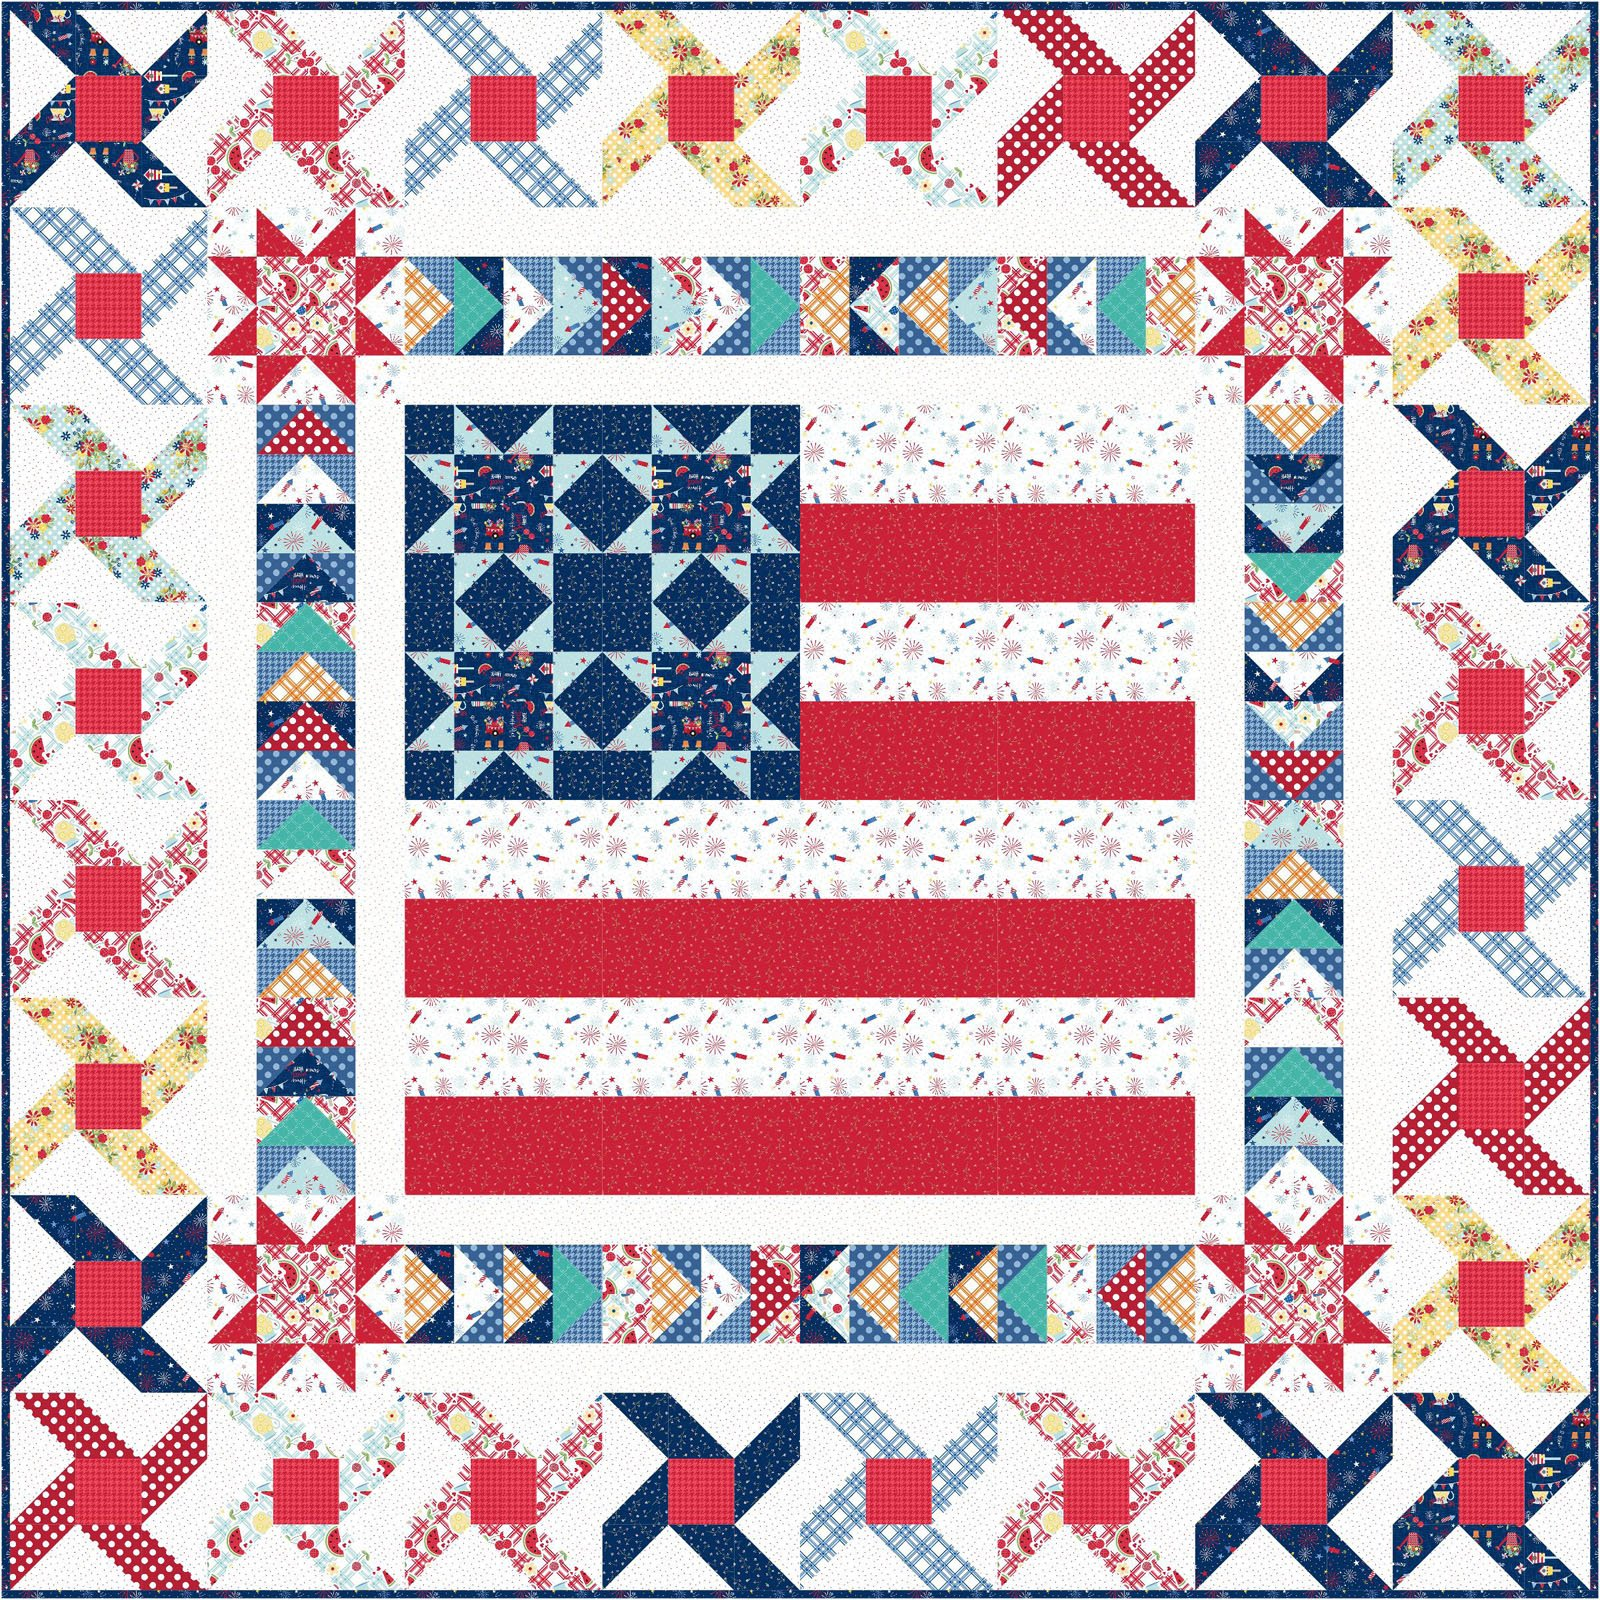 EESC-KITMASSTA - RED, WHITE & BLOOM - SMALL TOWN AMERICA KIT 48 X 48 - ARRIVING MARCH 2021